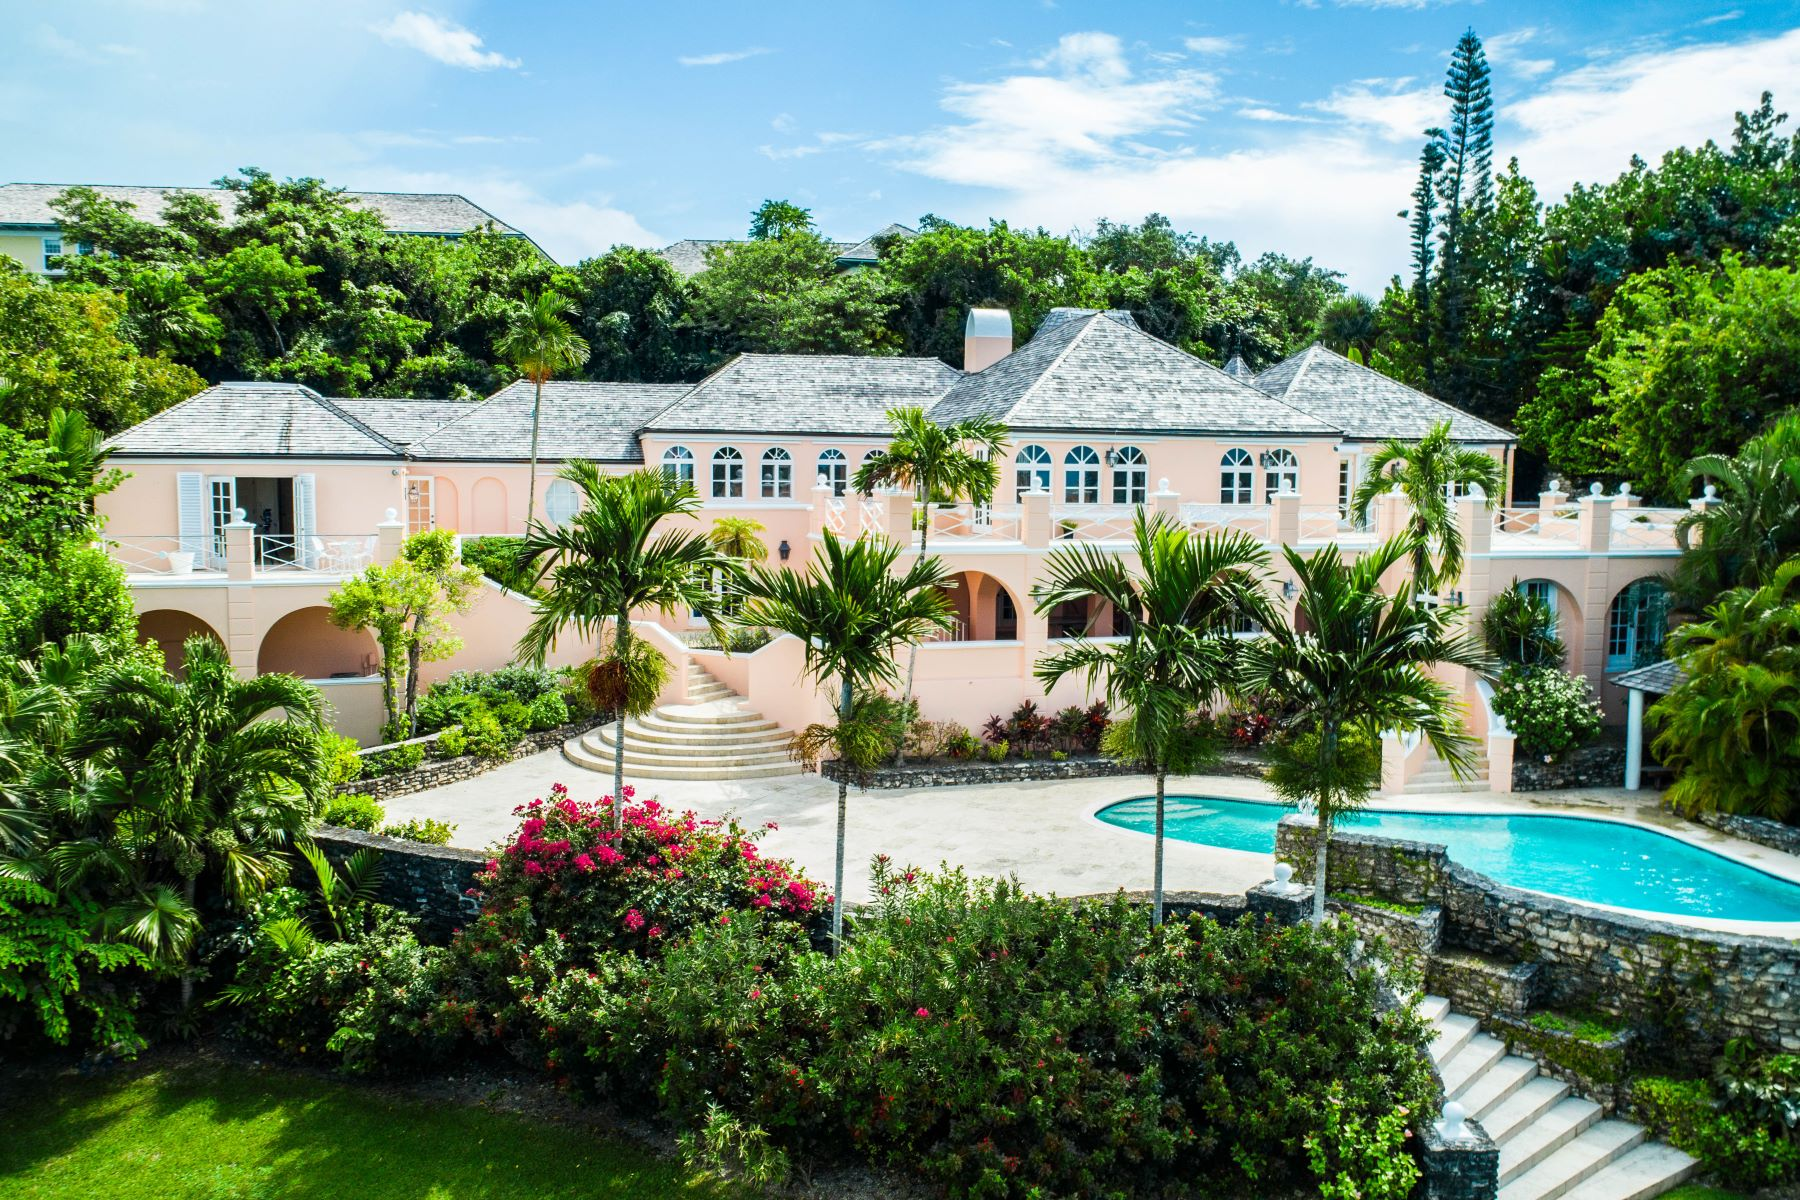 Single Family Home for Sale at Coral Lane Estate in Lyford Cay Lyford Cay, Nassau And Paradise Island Bahamas